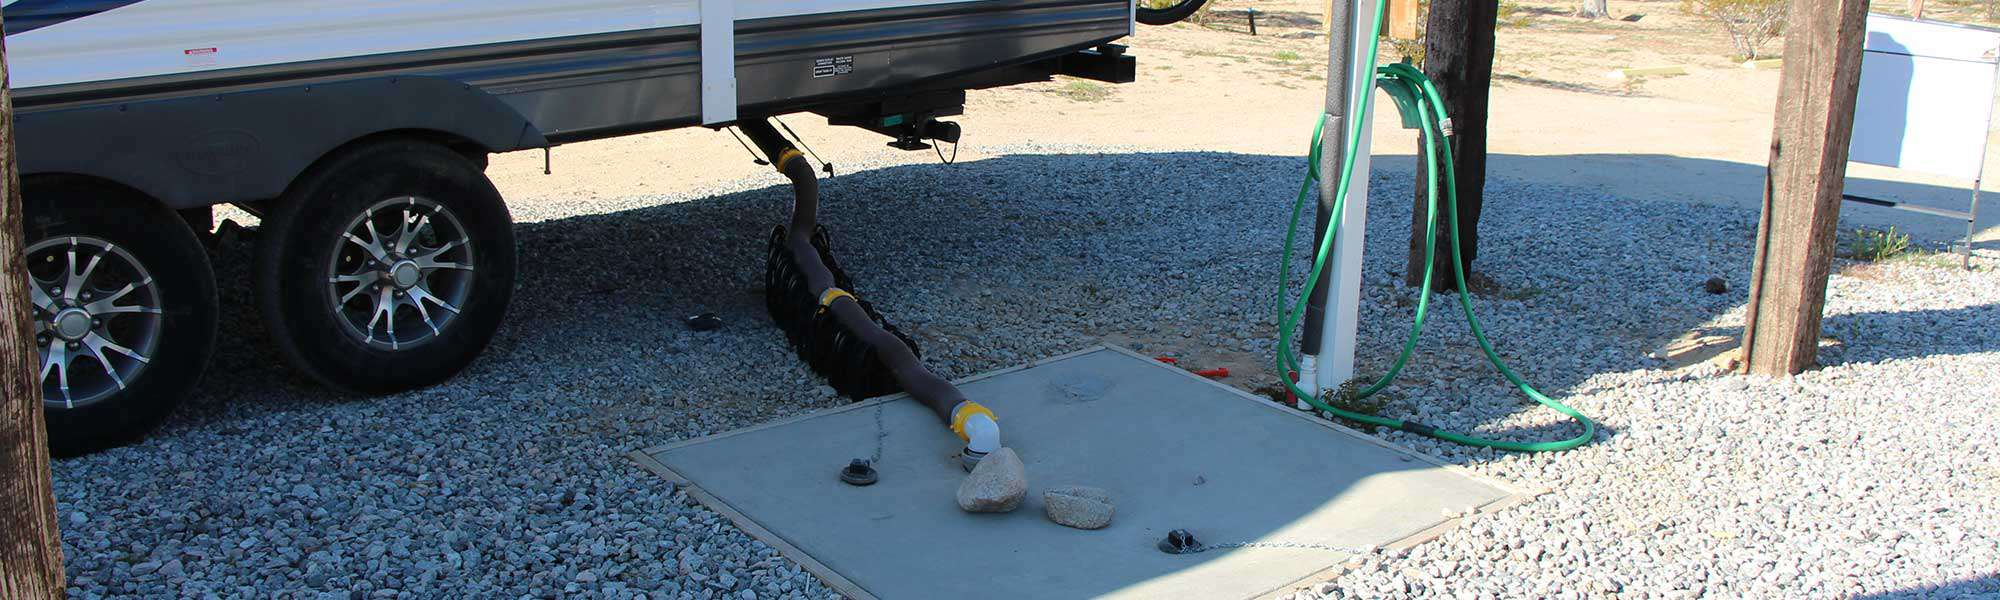 how-to-maintain-rv-holding-tanks-properly-to-prevent-clogs